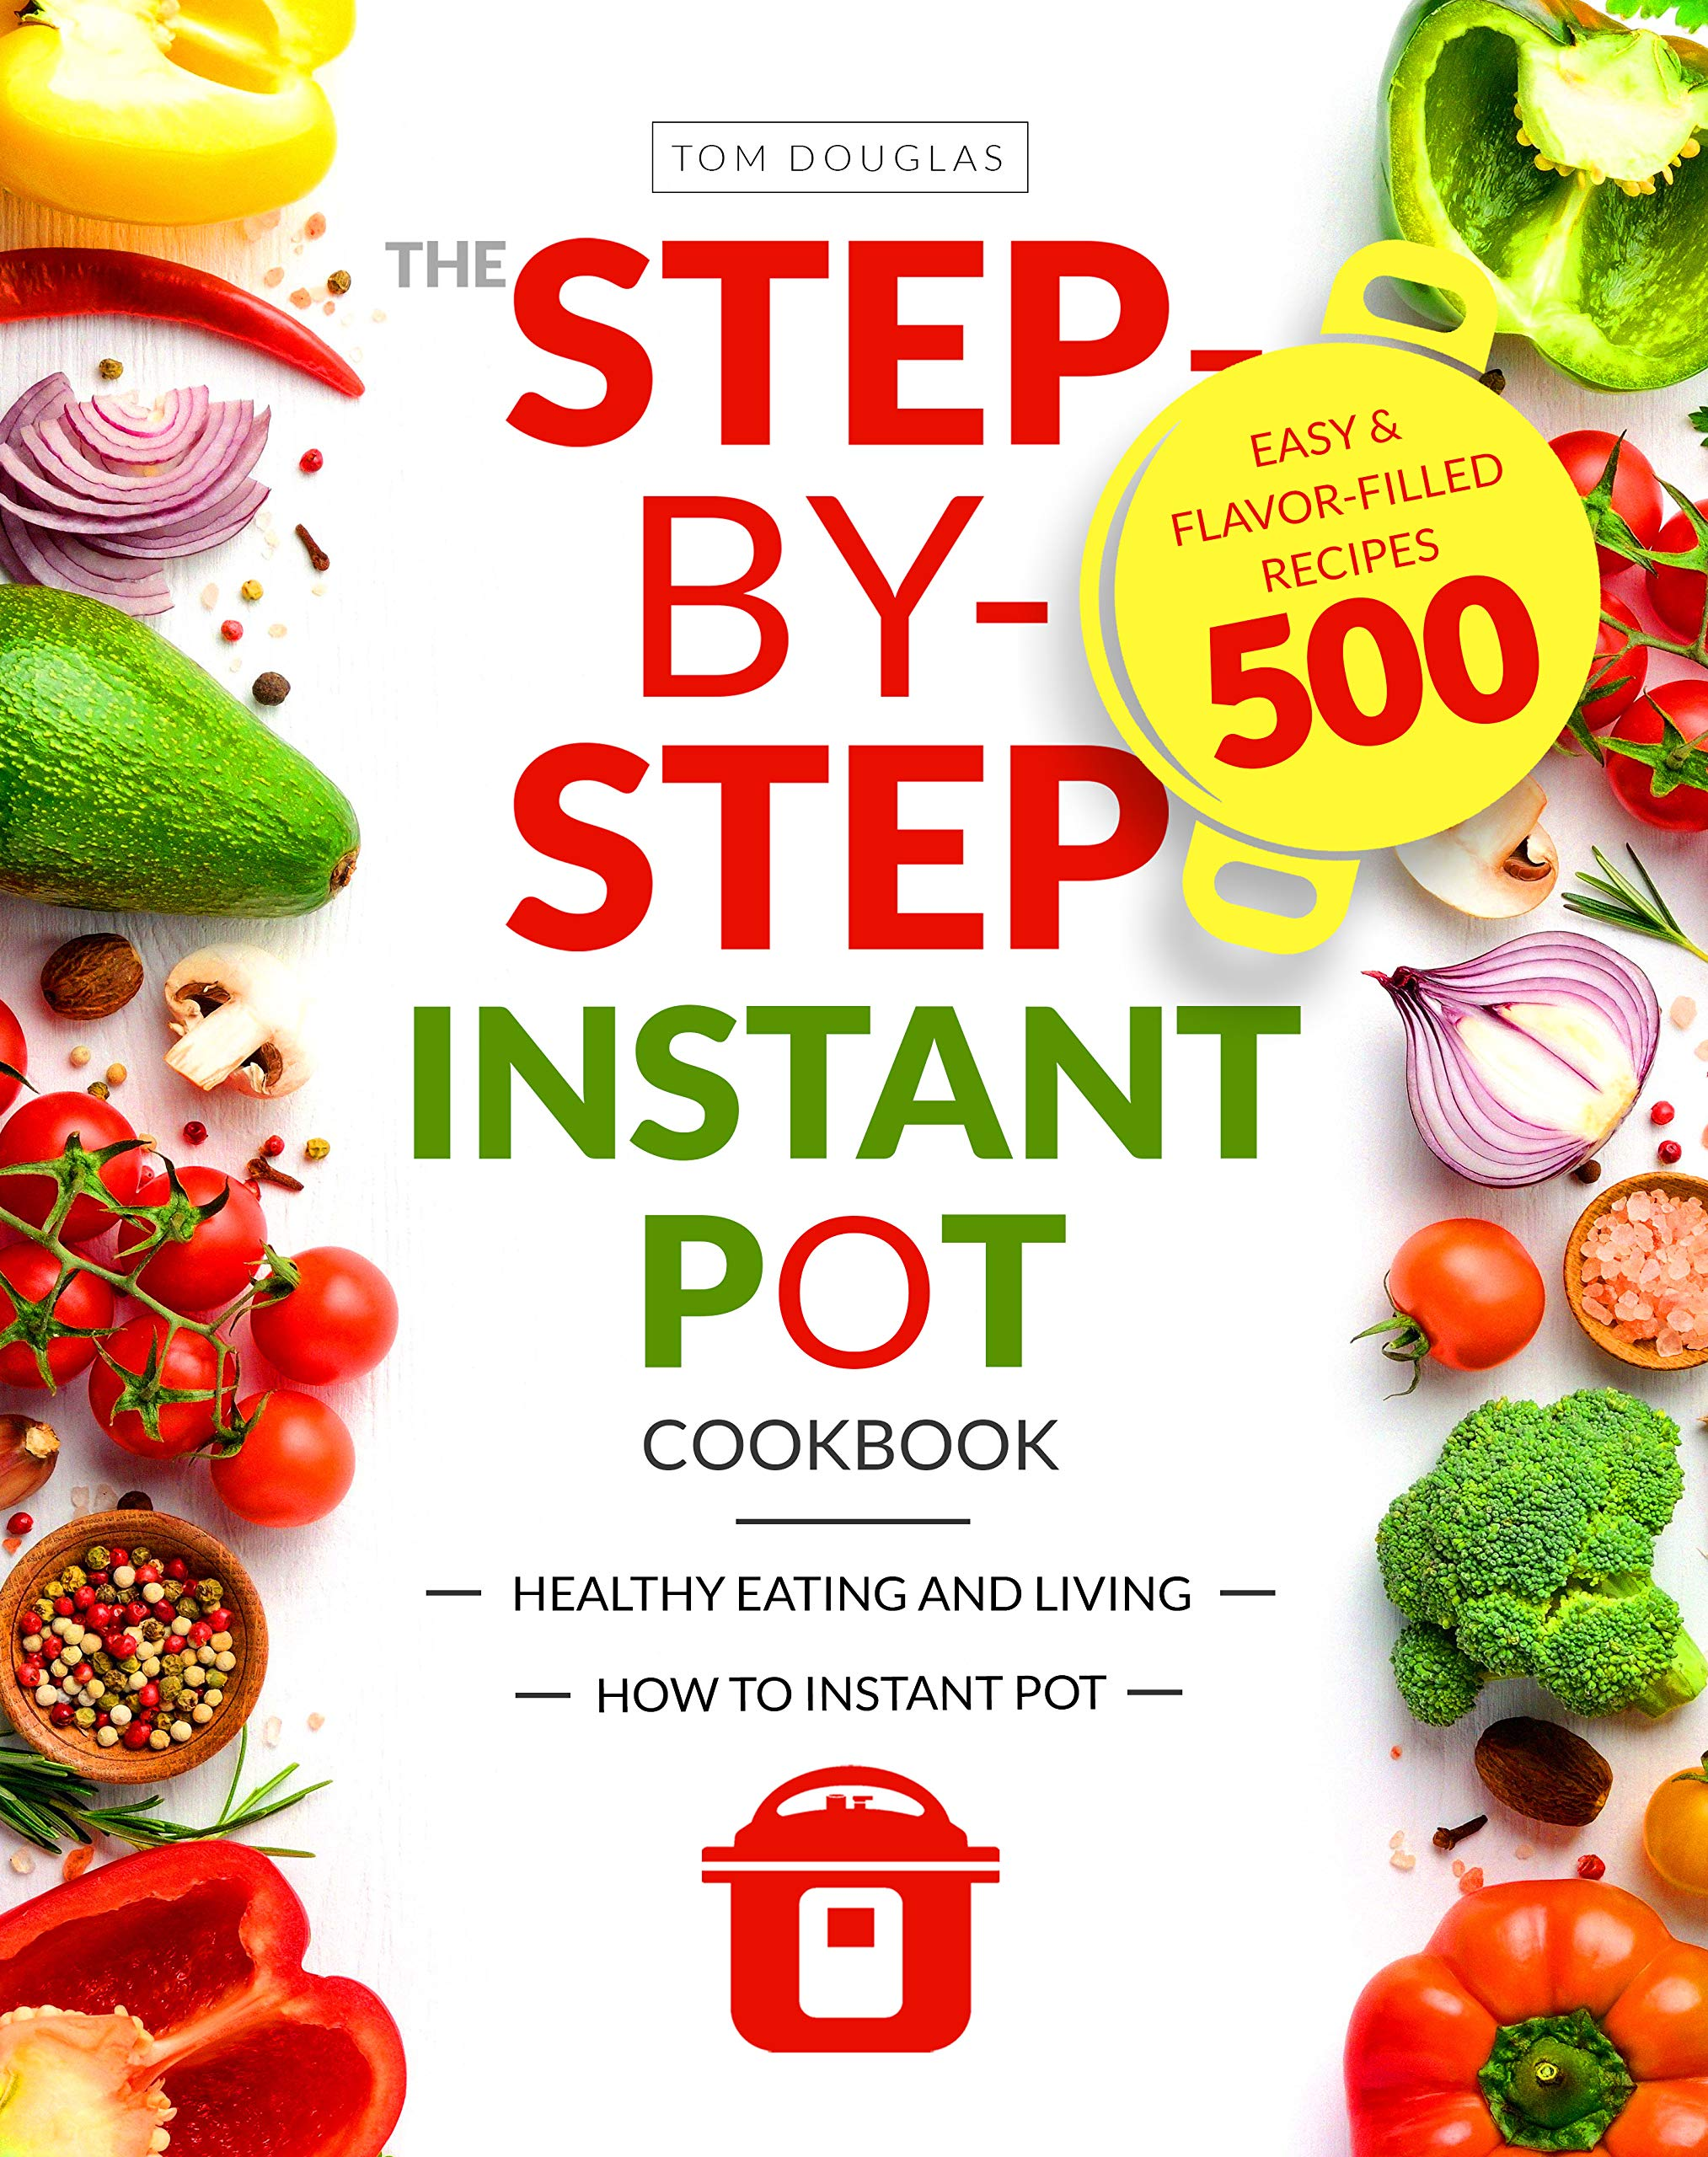 The Step-by-Step Instant Pot Cookbook: Healthy Eating and Living | Easy & Flavor-Filled Recipes